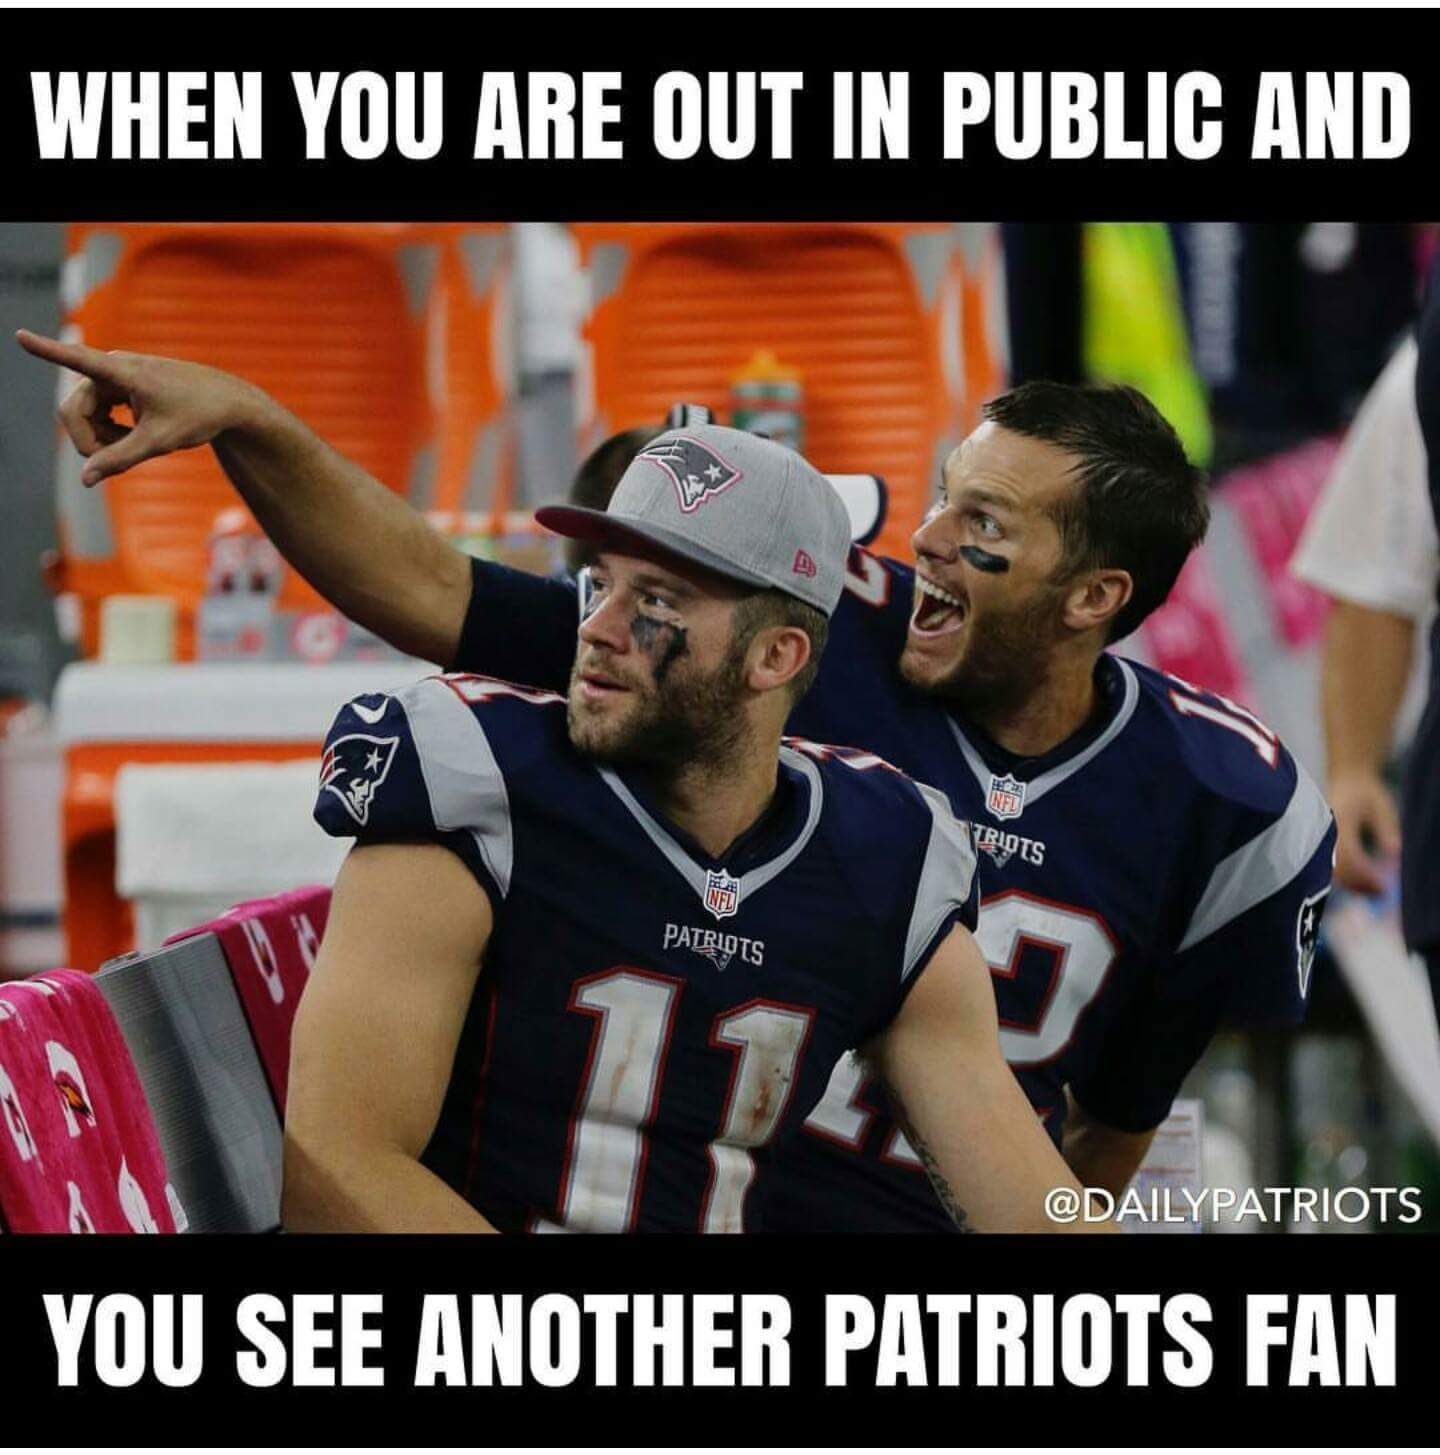 17017154 1835648790035900 4443137077103509965 O Jpg 1440 1455 With Images New England Patriots Football Patriots Memes Patriots Football